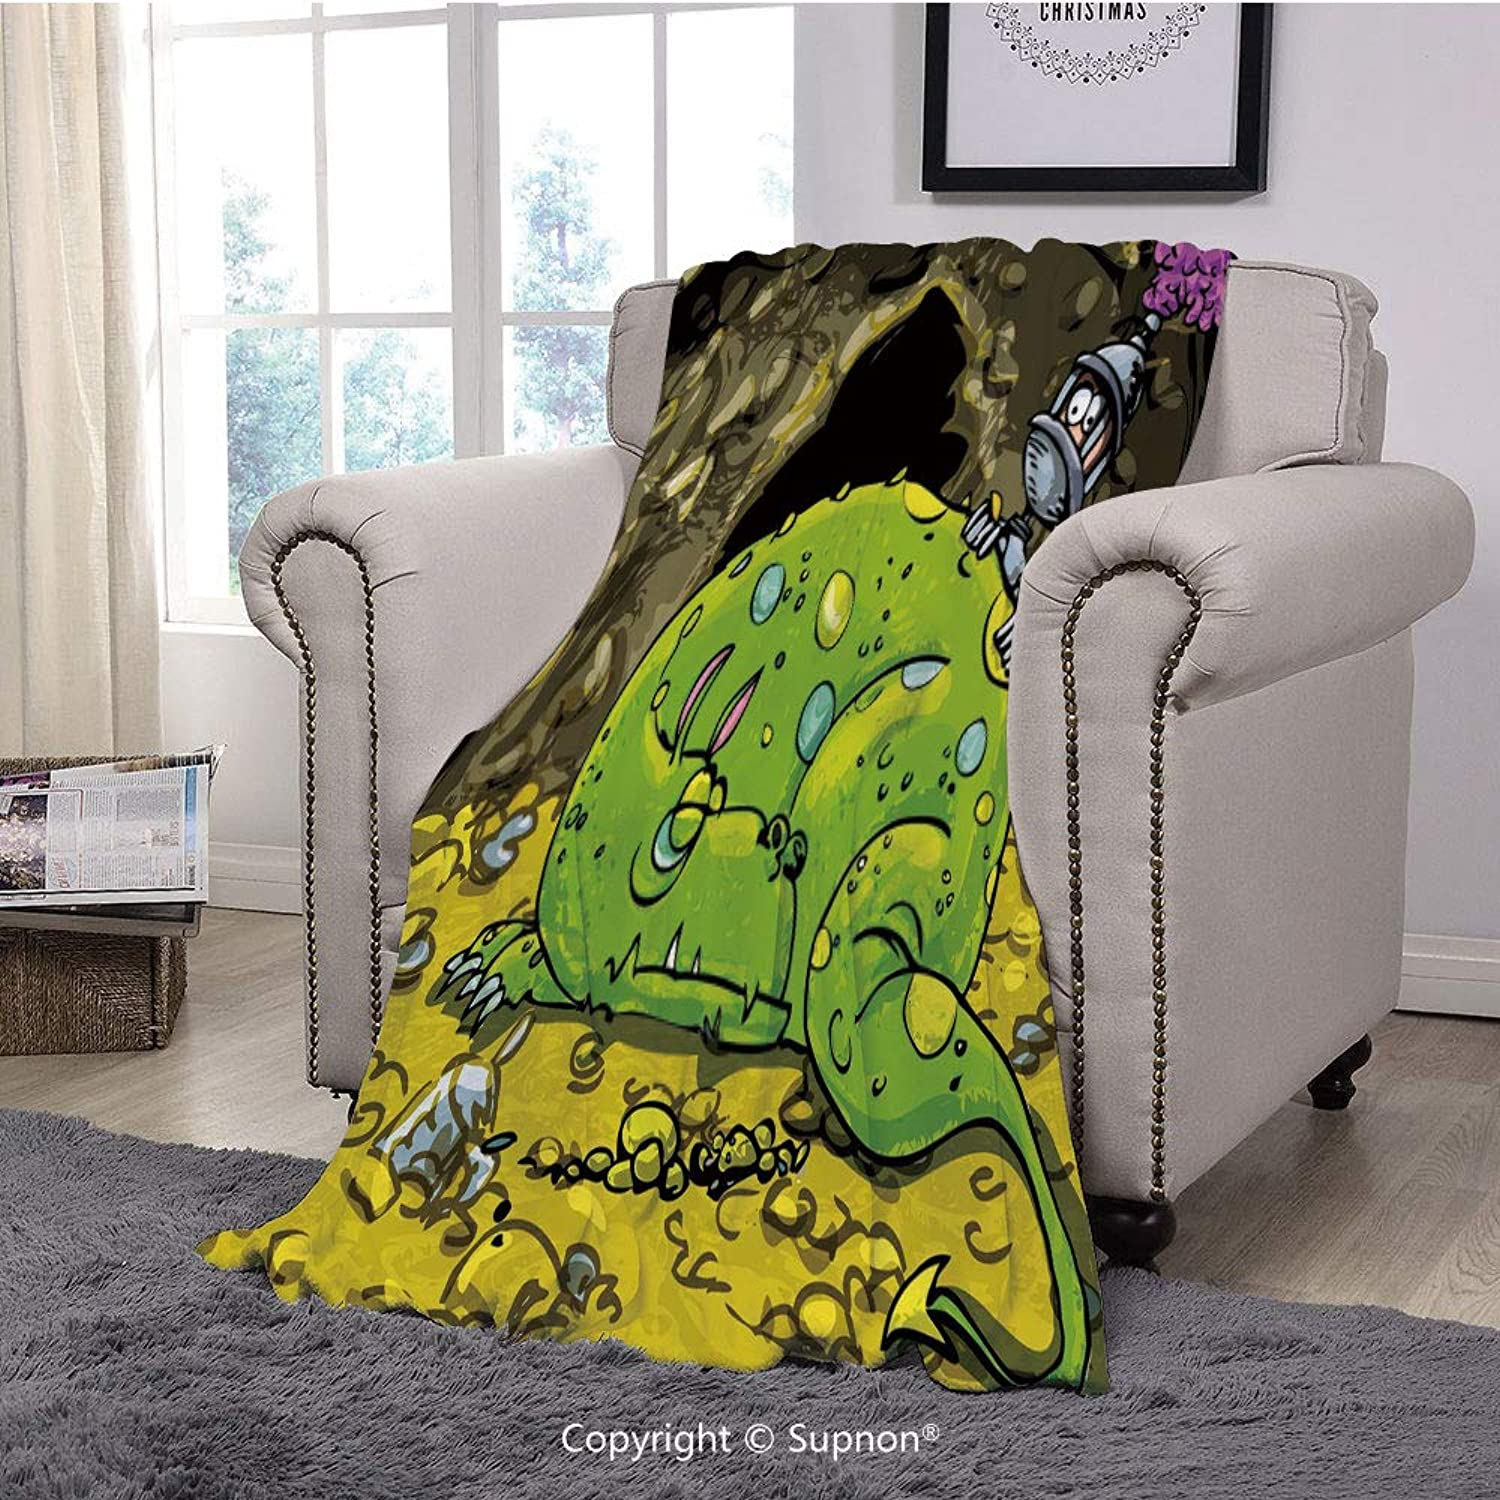 Throw Blanket Super Soft Fuzzy Light Blanket,Dragon,Cute Creature Sleeping on A Pile of gold and Scared Knight Peering Over Kids Cartoon,Multicolor(51  x 51 )